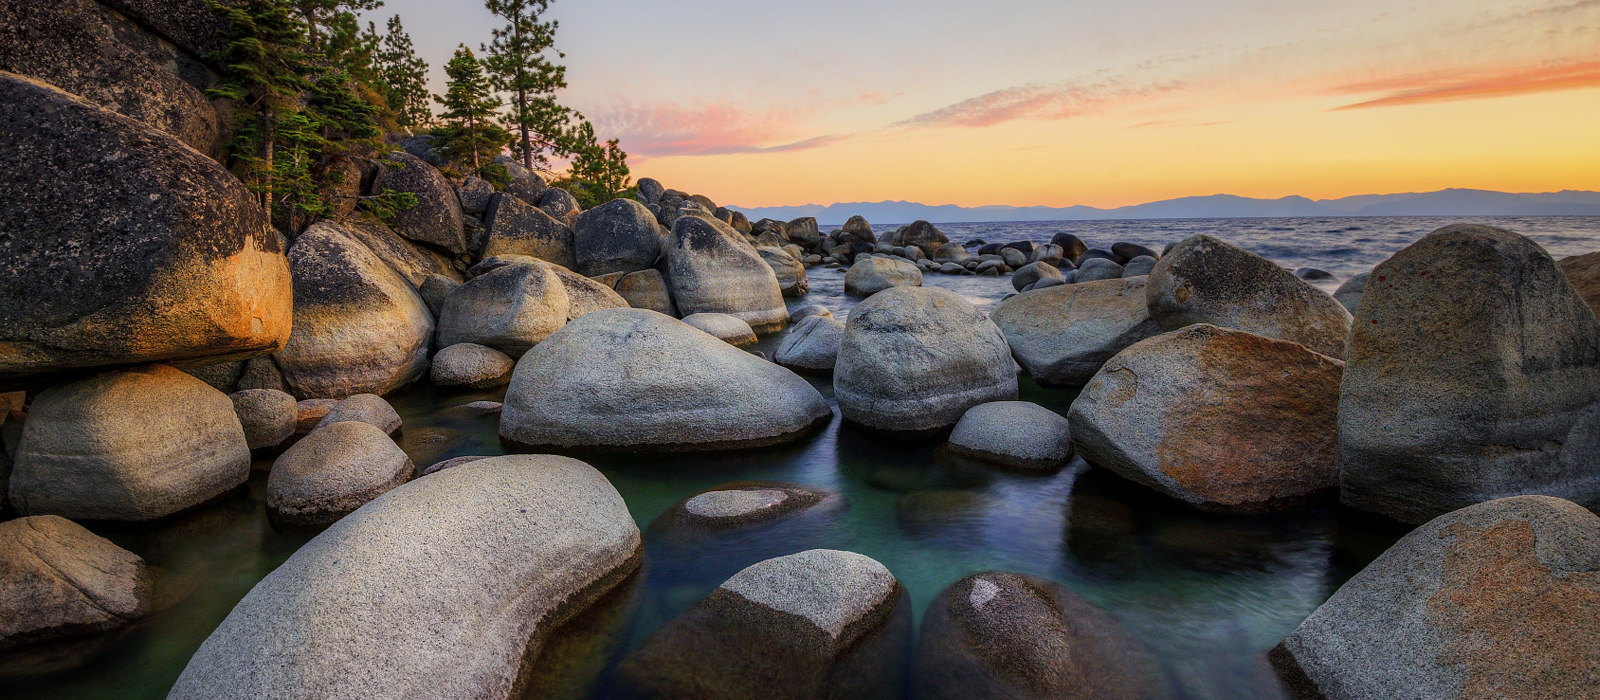 INCLINE LAW GROUP,LLP, Lake Tahoe